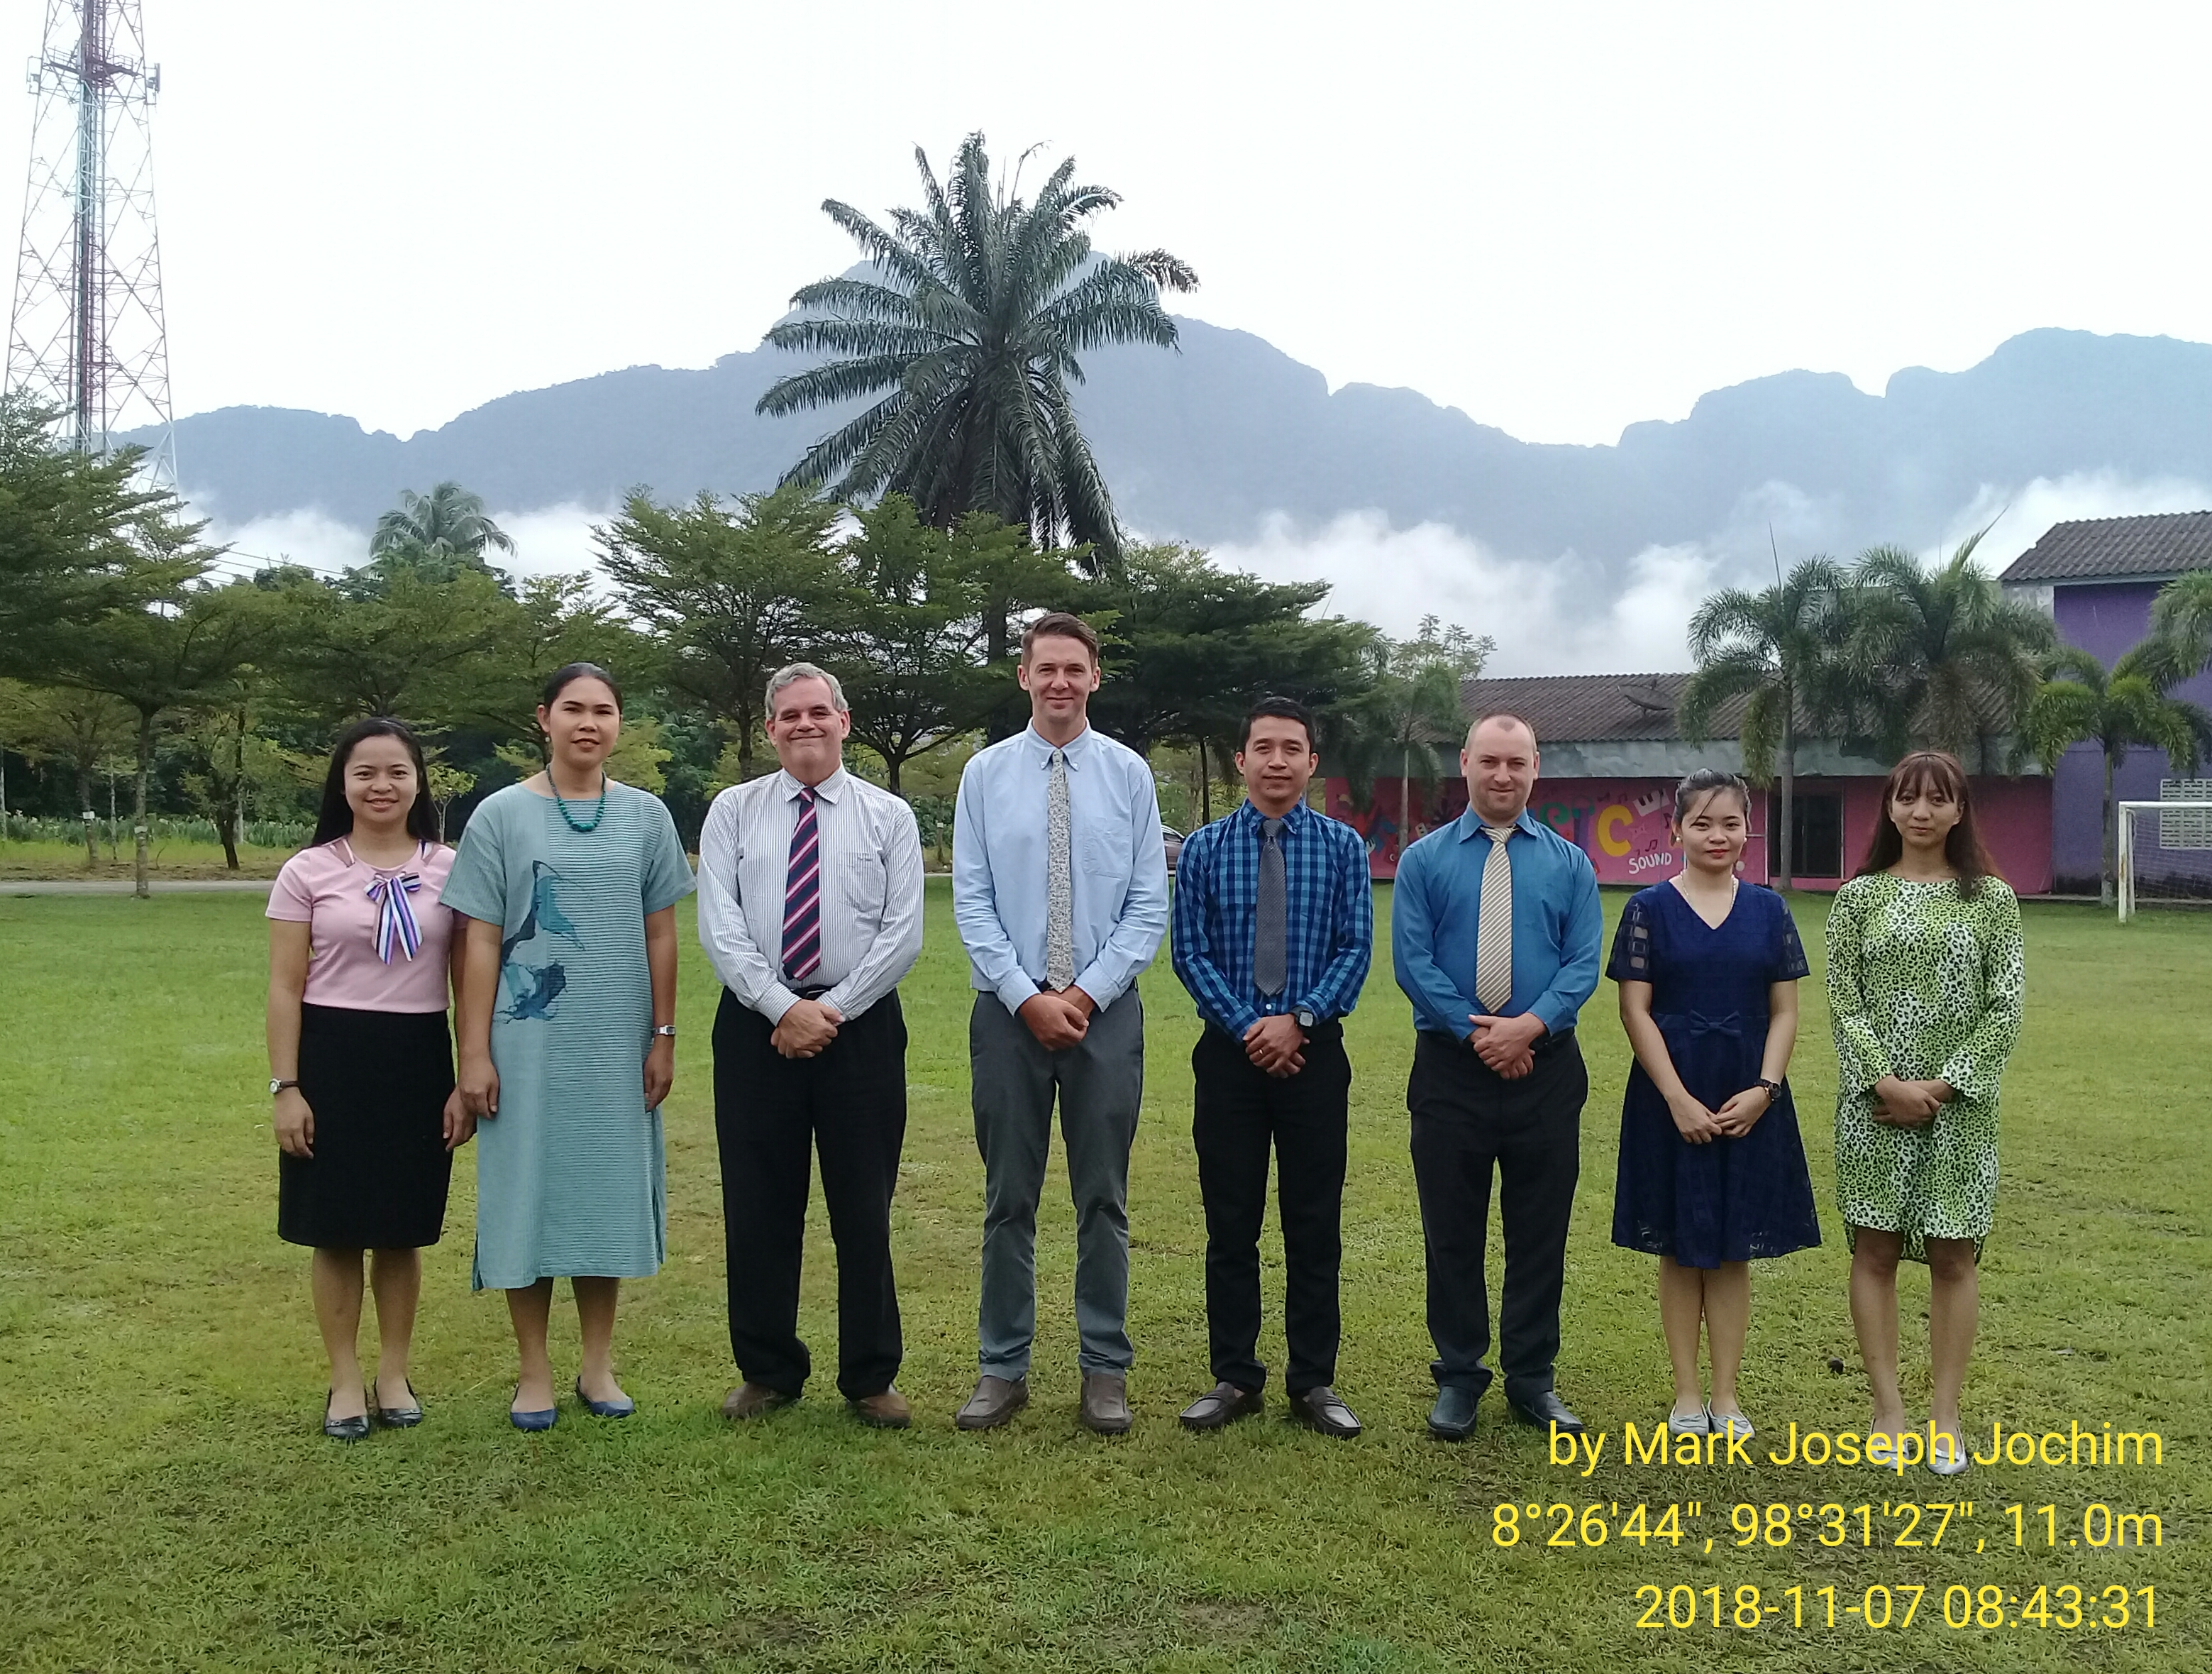 English Programme teachers at Ban Thai Chang Municipal School in Phang Nga Town, Thailand. I am the third from the left. Photo taken by BTC staff on November 7, 2018.